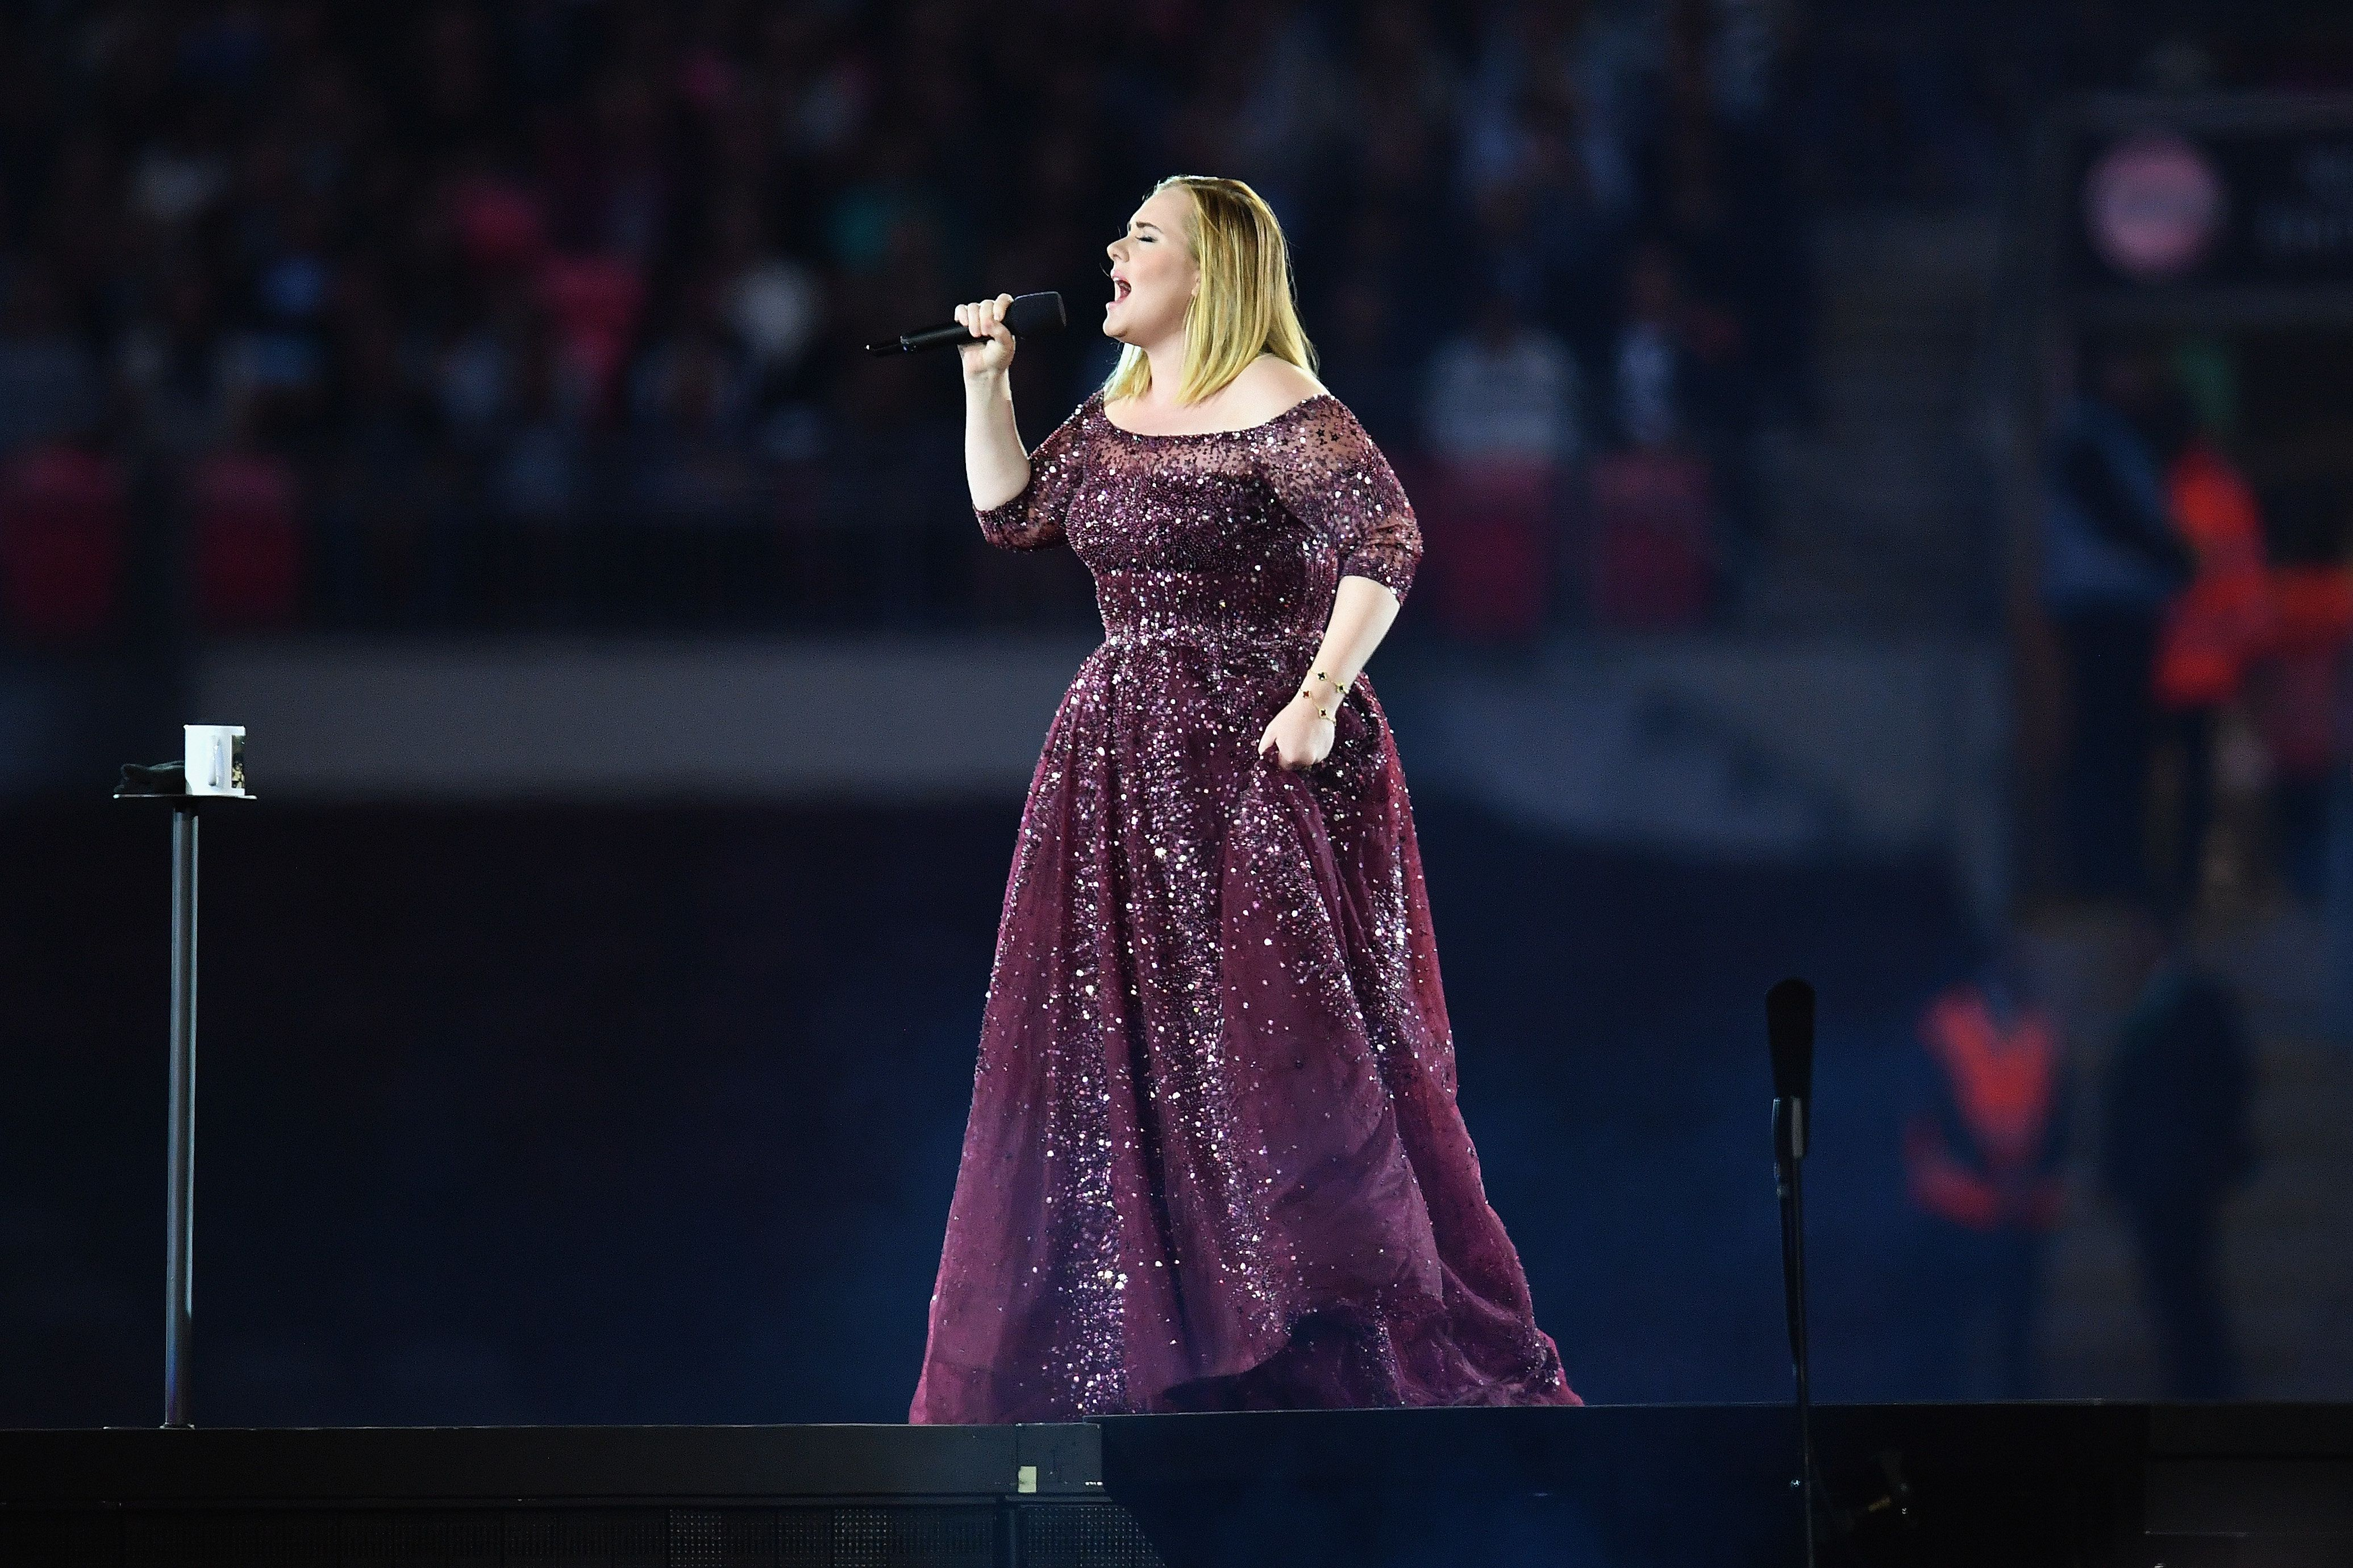 Adele Surpasses Her Own Swearing Record During Wembley Stadium Show